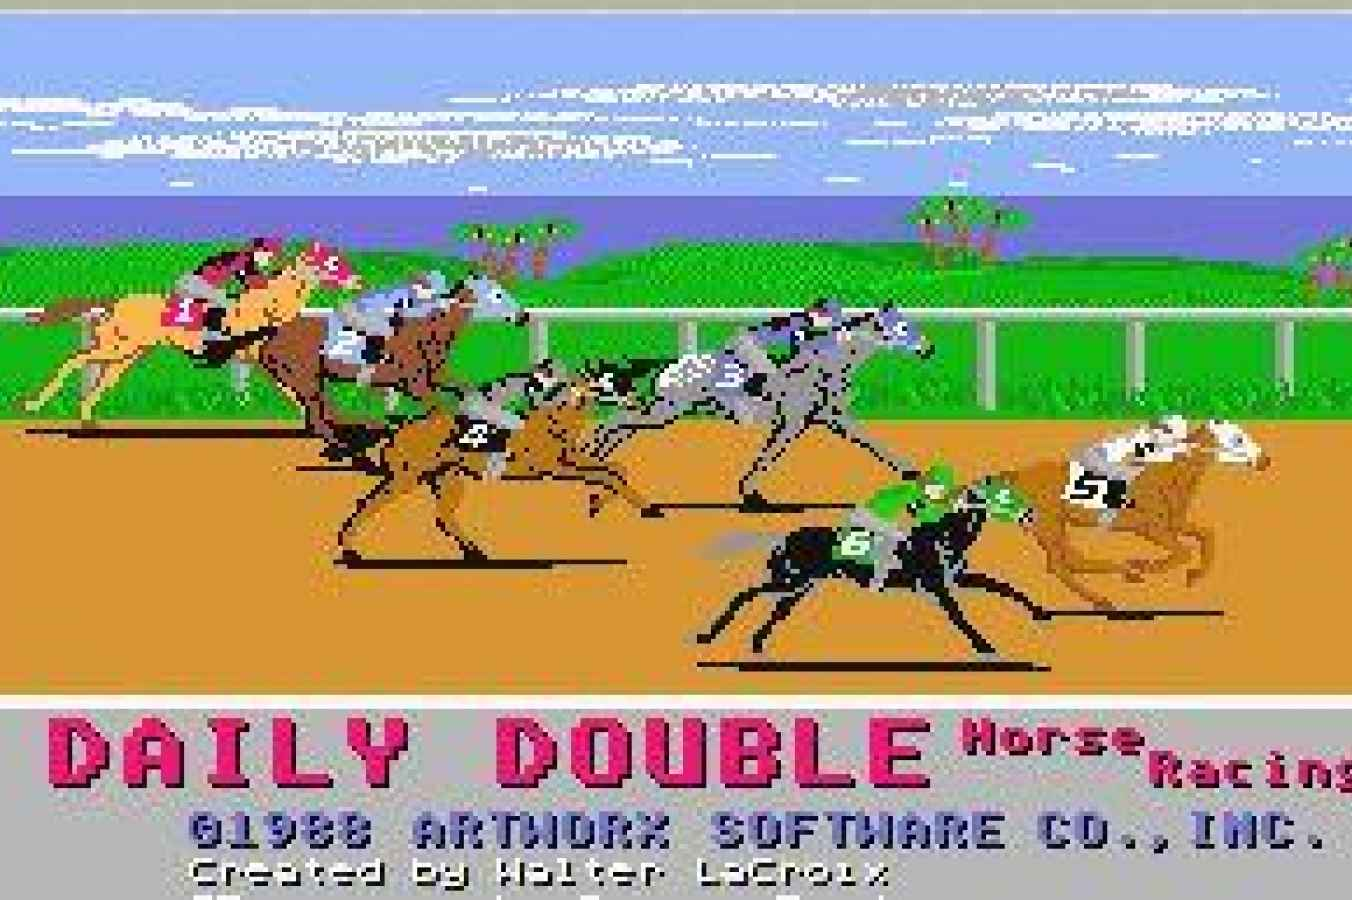 Sometimes Horse Racing Is Better Left On The Track